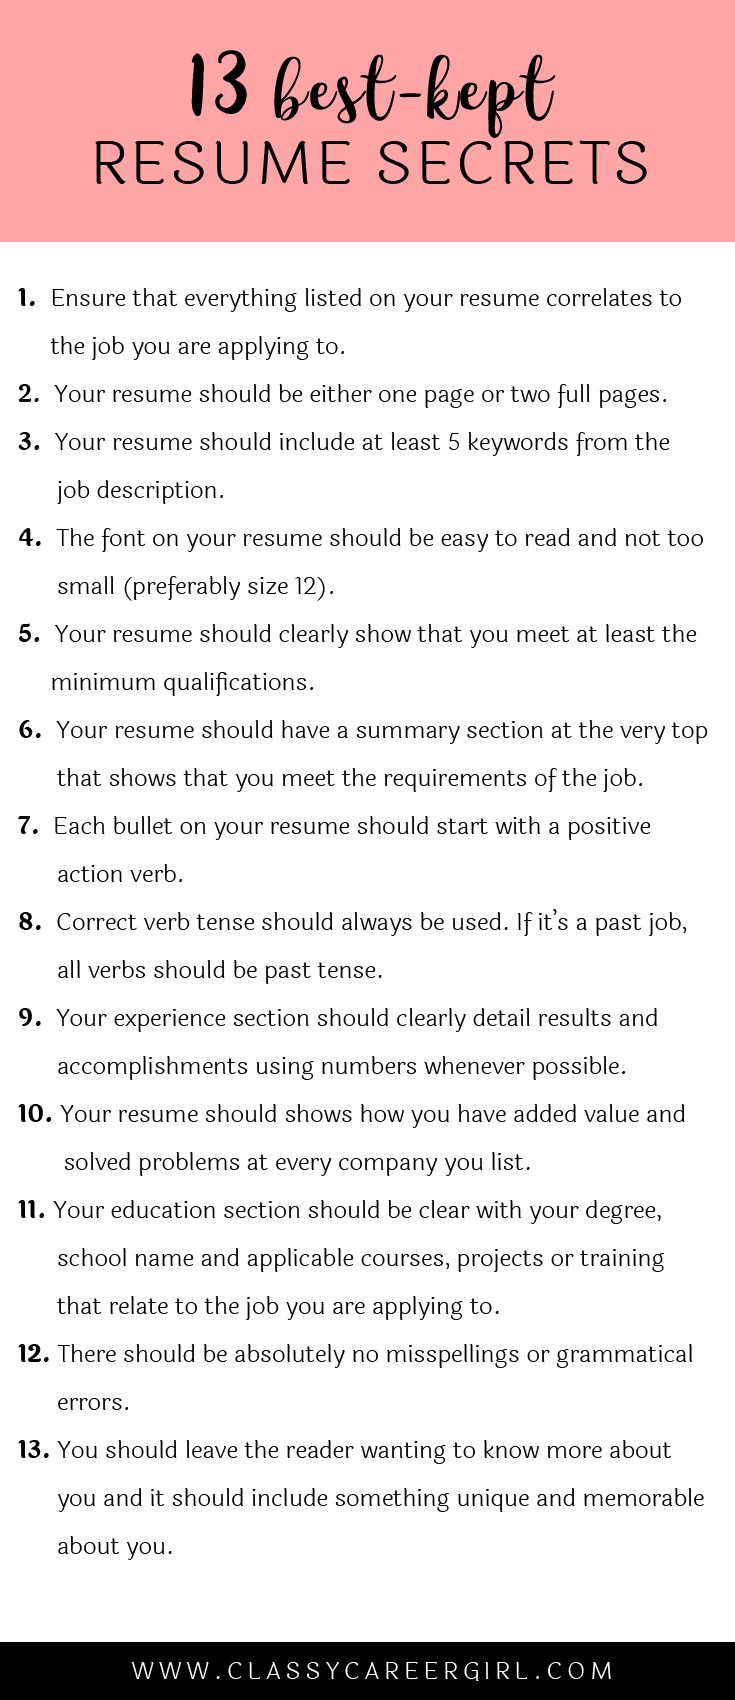 Opposenewapstandardsus  Prepossessing  Ideas About Resume On Pinterest  Cv Format Resume Cv And  With Great Some Hiring Managers Will Toss Your Resume Out If You Dont Know These  With Lovely Manufacturing Engineer Resume Also Infographic Resume Builder In Addition Leadership Resume Examples And Objective Part Of Resume As Well As Resume Summary Statements Additionally Examples Of Resume Skills From Pinterestcom With Opposenewapstandardsus  Great  Ideas About Resume On Pinterest  Cv Format Resume Cv And  With Lovely Some Hiring Managers Will Toss Your Resume Out If You Dont Know These  And Prepossessing Manufacturing Engineer Resume Also Infographic Resume Builder In Addition Leadership Resume Examples From Pinterestcom